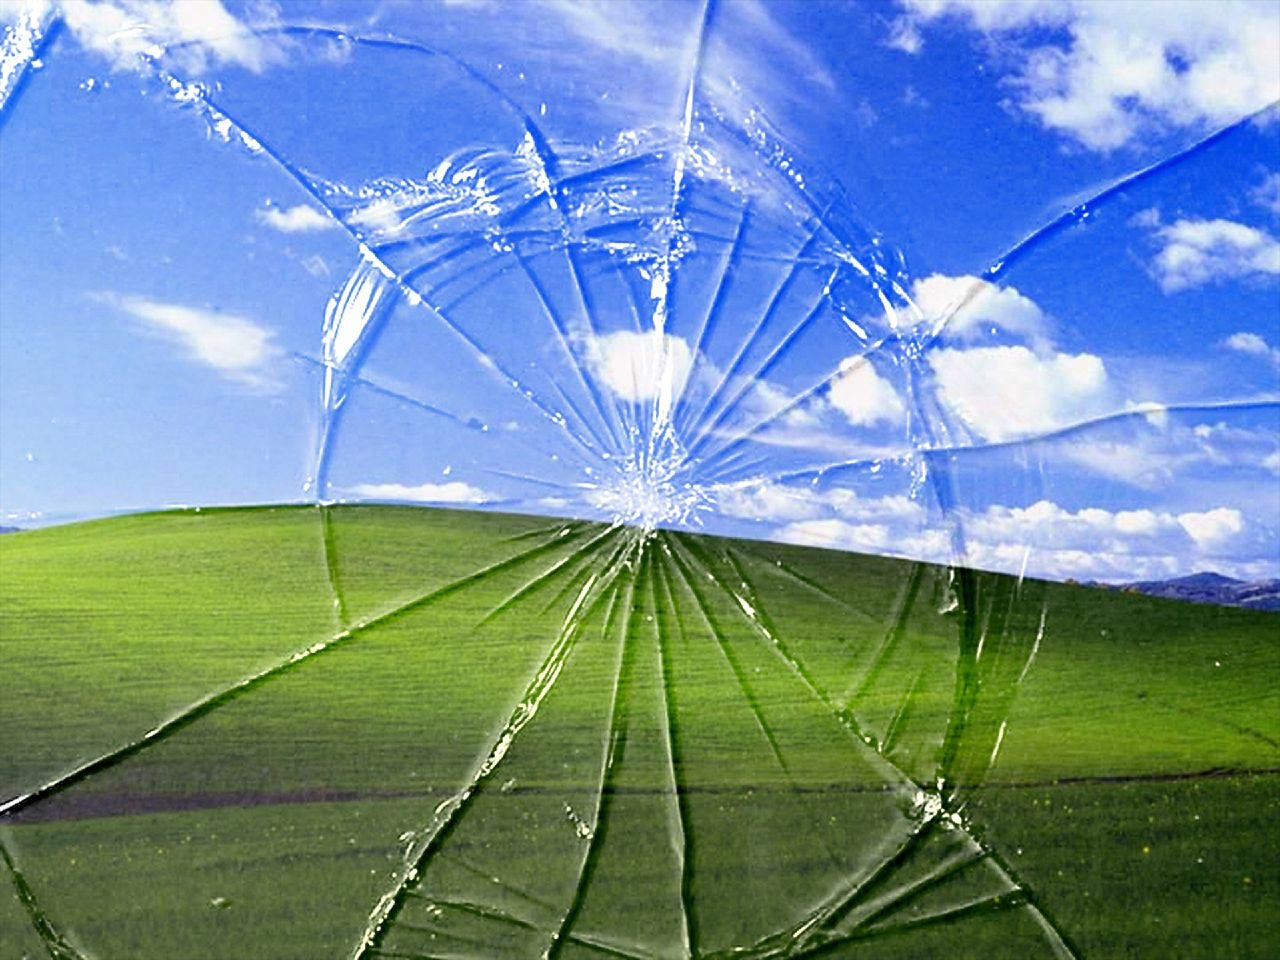 Abstract Free Download Wallpaper Windows Xp Wallpaper